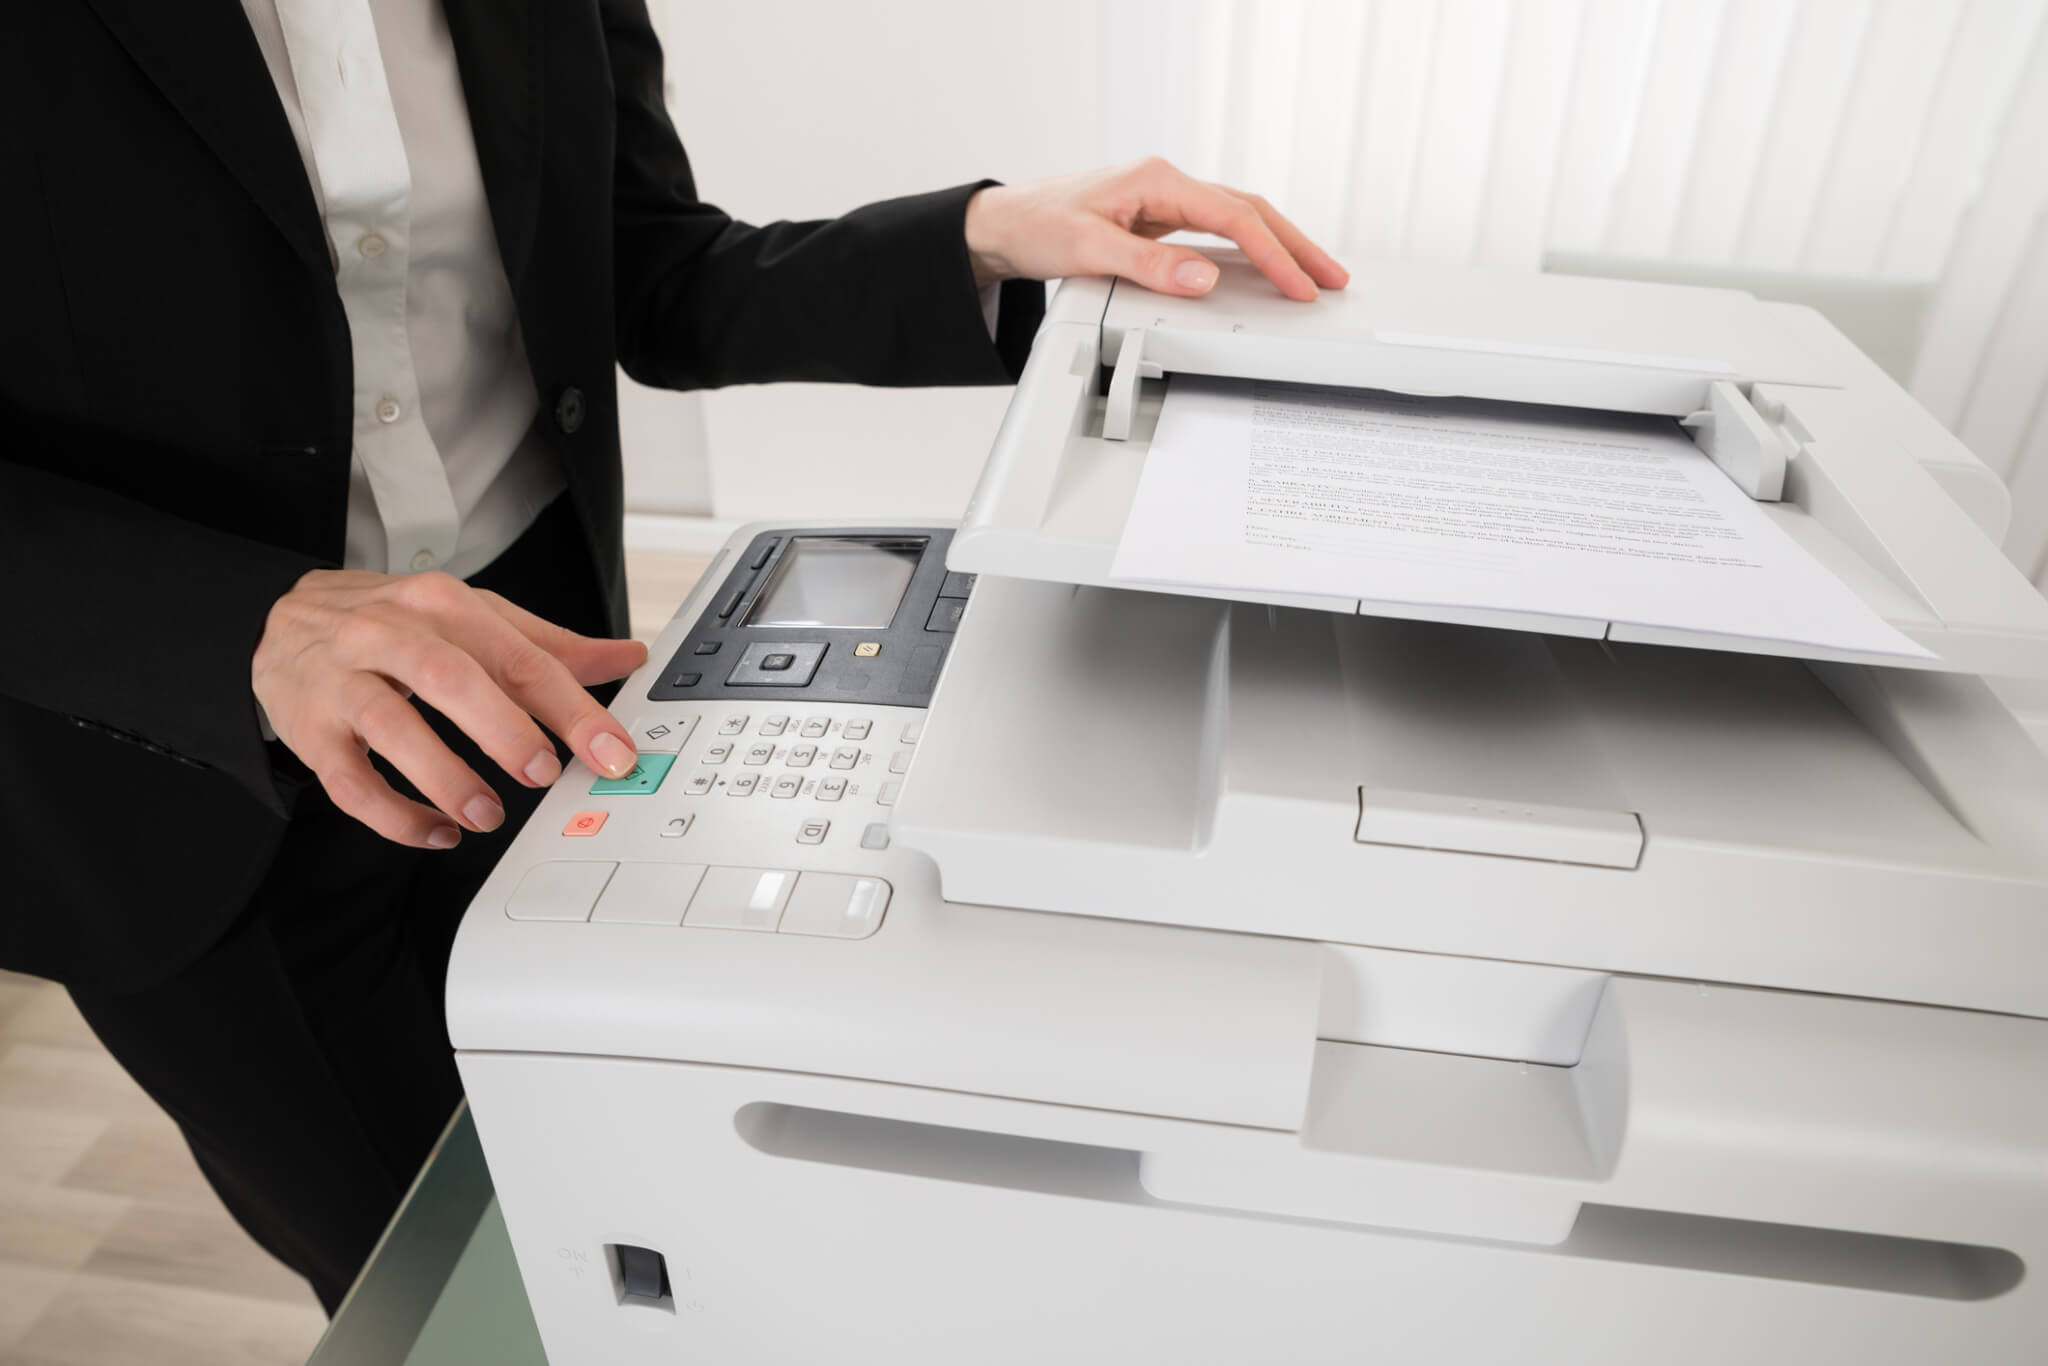 Businesswoman Pressing Printer's Button